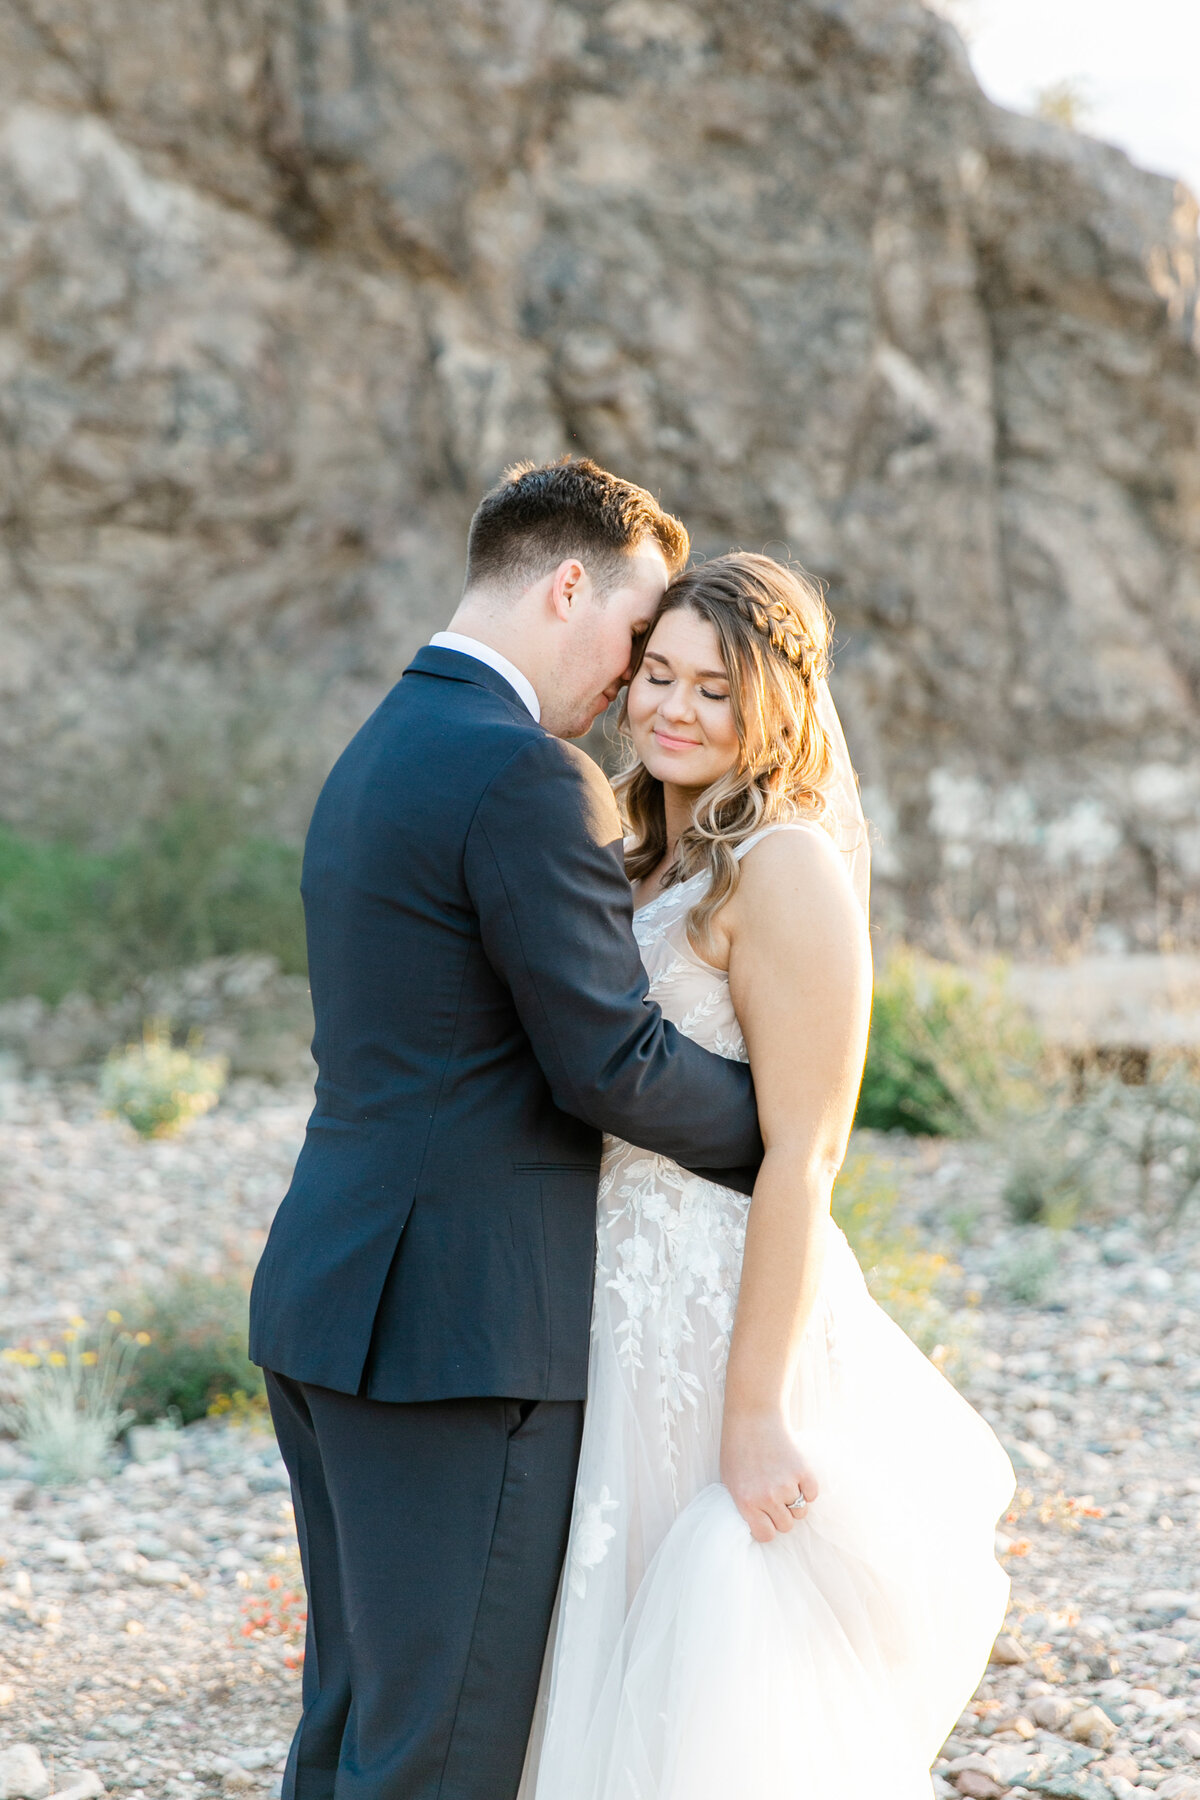 Karlie Colleen Photography - Arizona Backyard wedding - Brittney & Josh-208